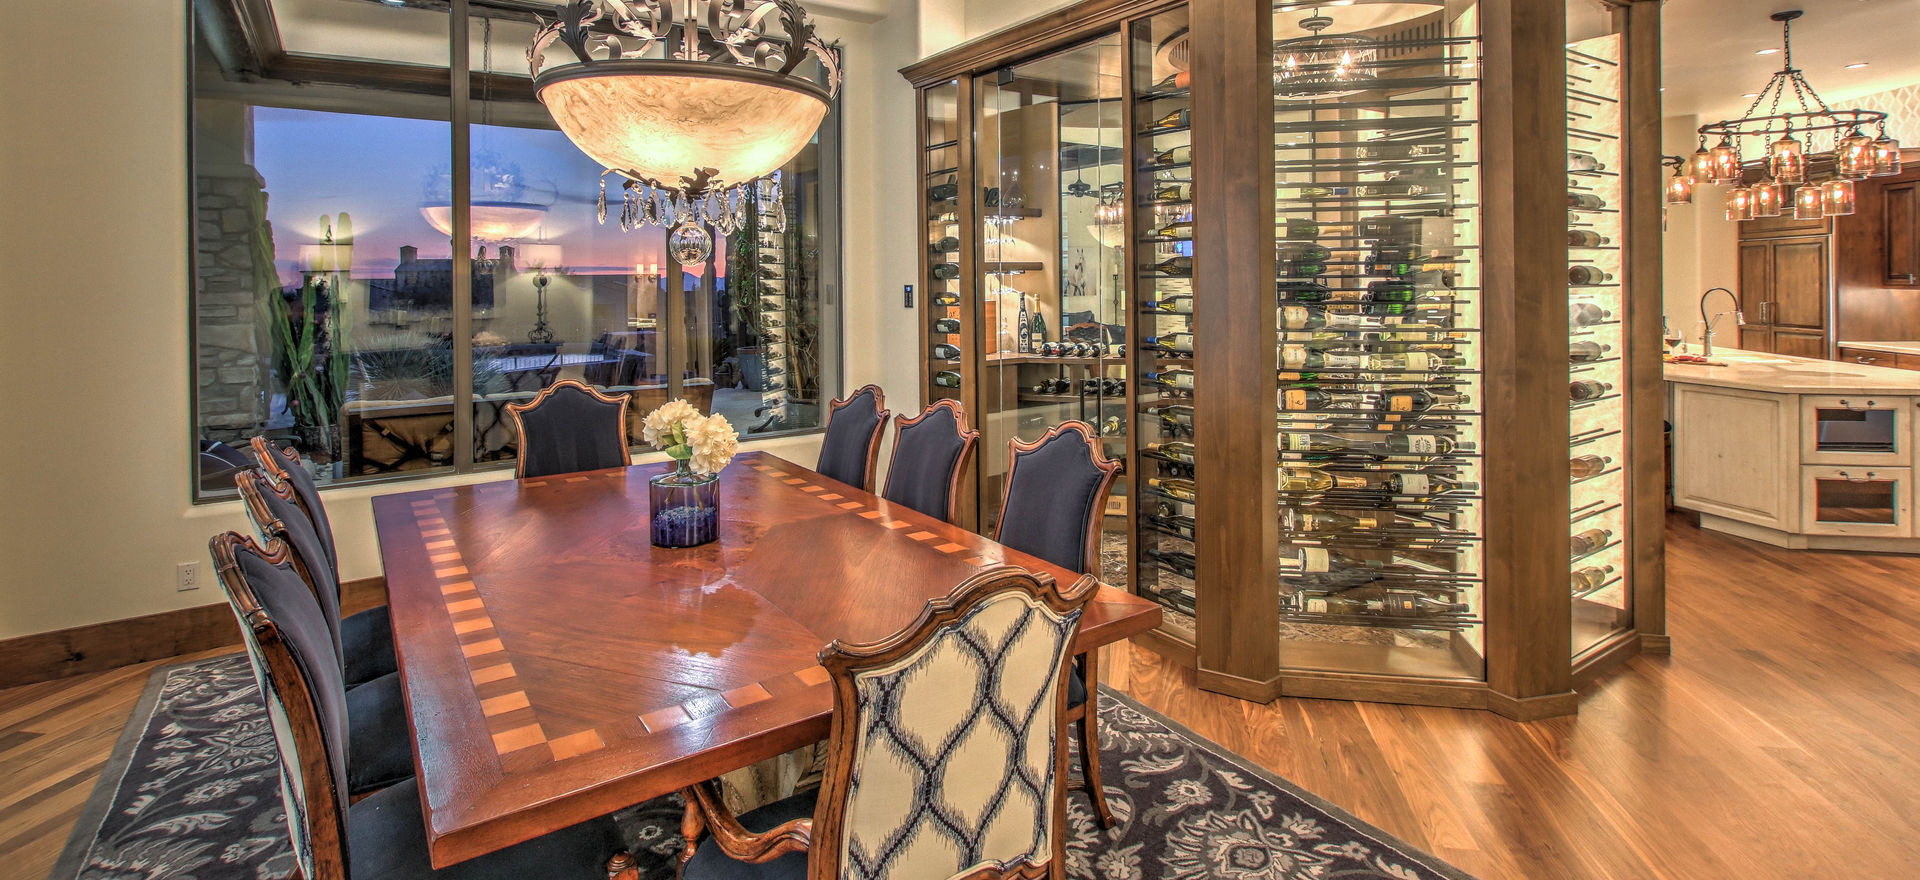 The new wine room is the centerpiece of the home. With views from multiple areas in the home, this labor of love was our last piece to complete.  Now the homeowner can truly put thier extensive wine collection center stage.